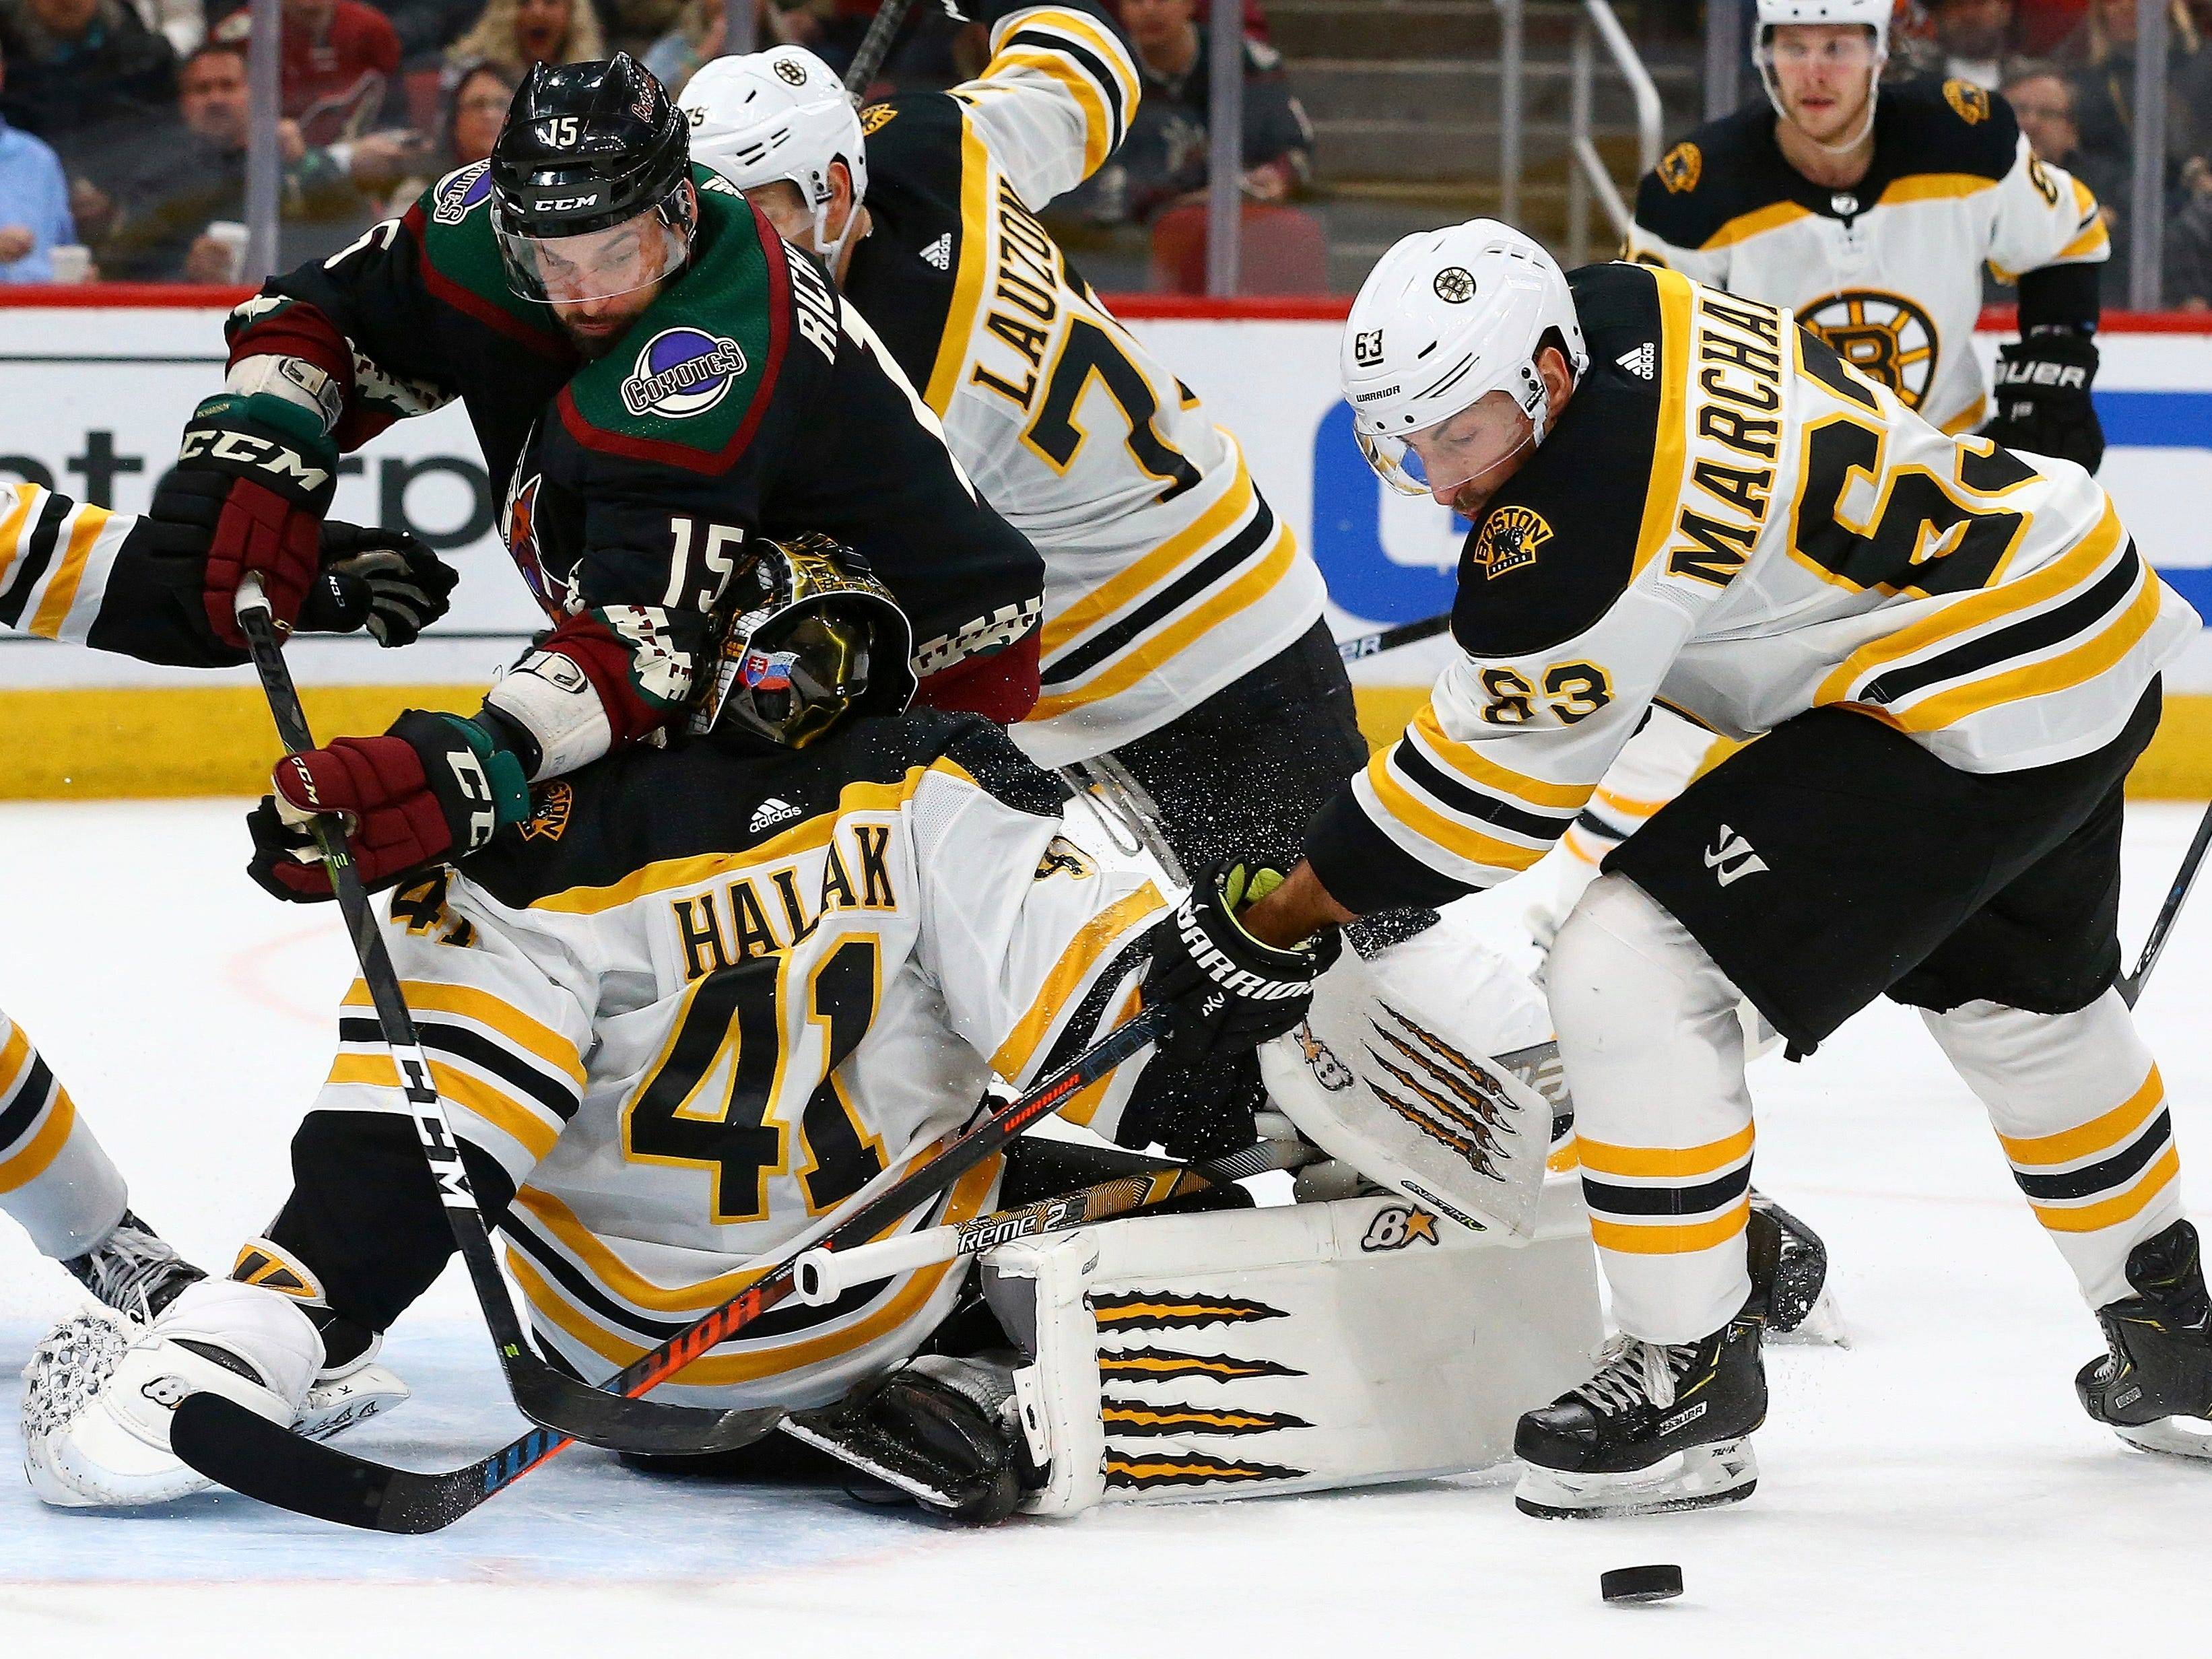 Arizona Coyotes center Brad Richardson (15) loses the puck as he collides with Boston Bruins goaltender Jaroslav Halak (41) while Bruins left wing Brad Marchand (63) watches the movement of the puck during the second period of an NHL hockey game Saturday, Nov. 17, 2018, in Glendale, Ariz. (AP Photo/Ross D. Franklin)